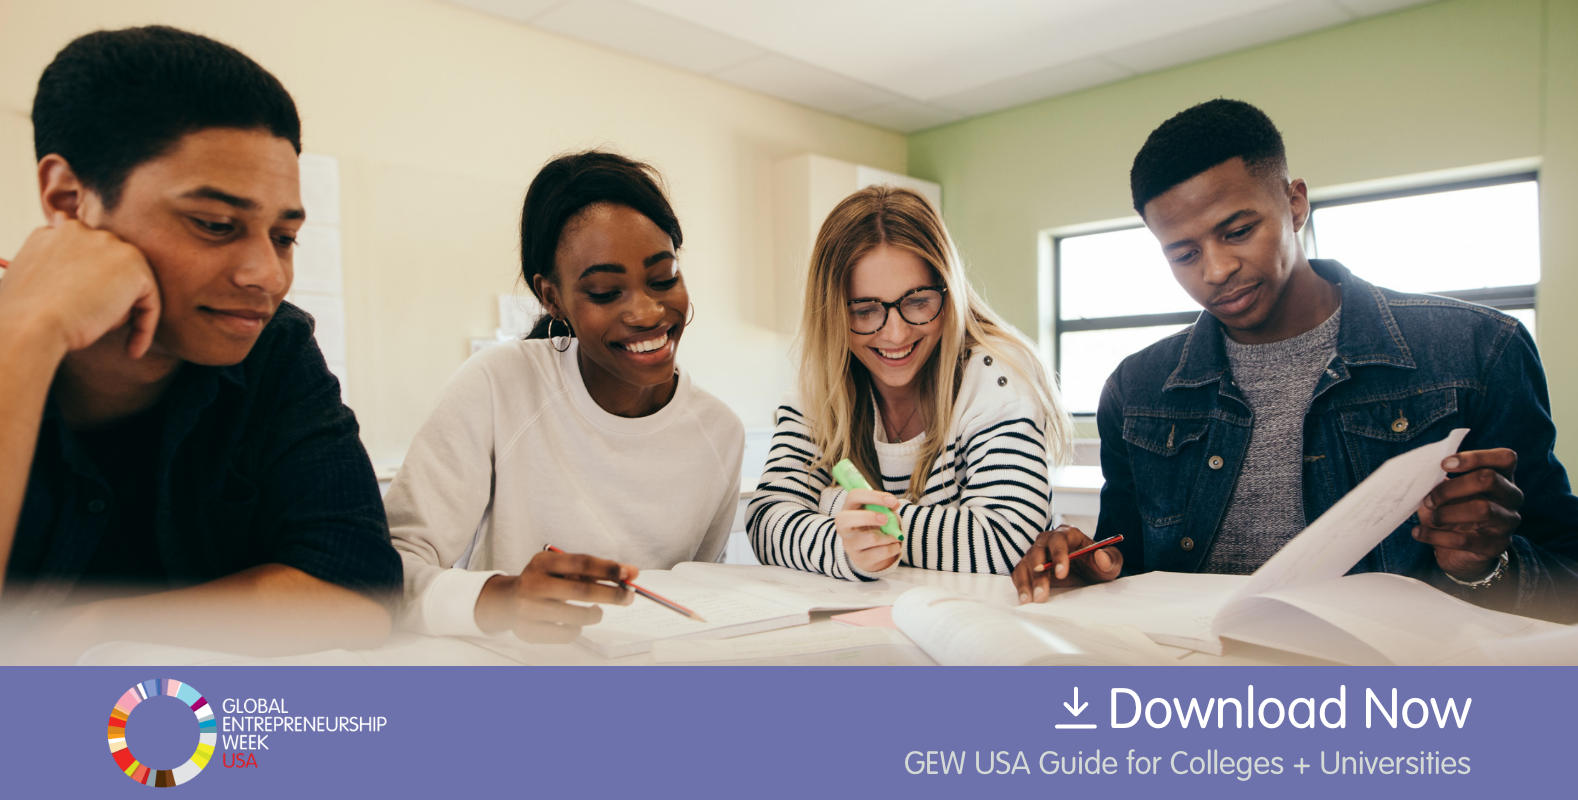 GEW USA Guide for Colleges + Universities